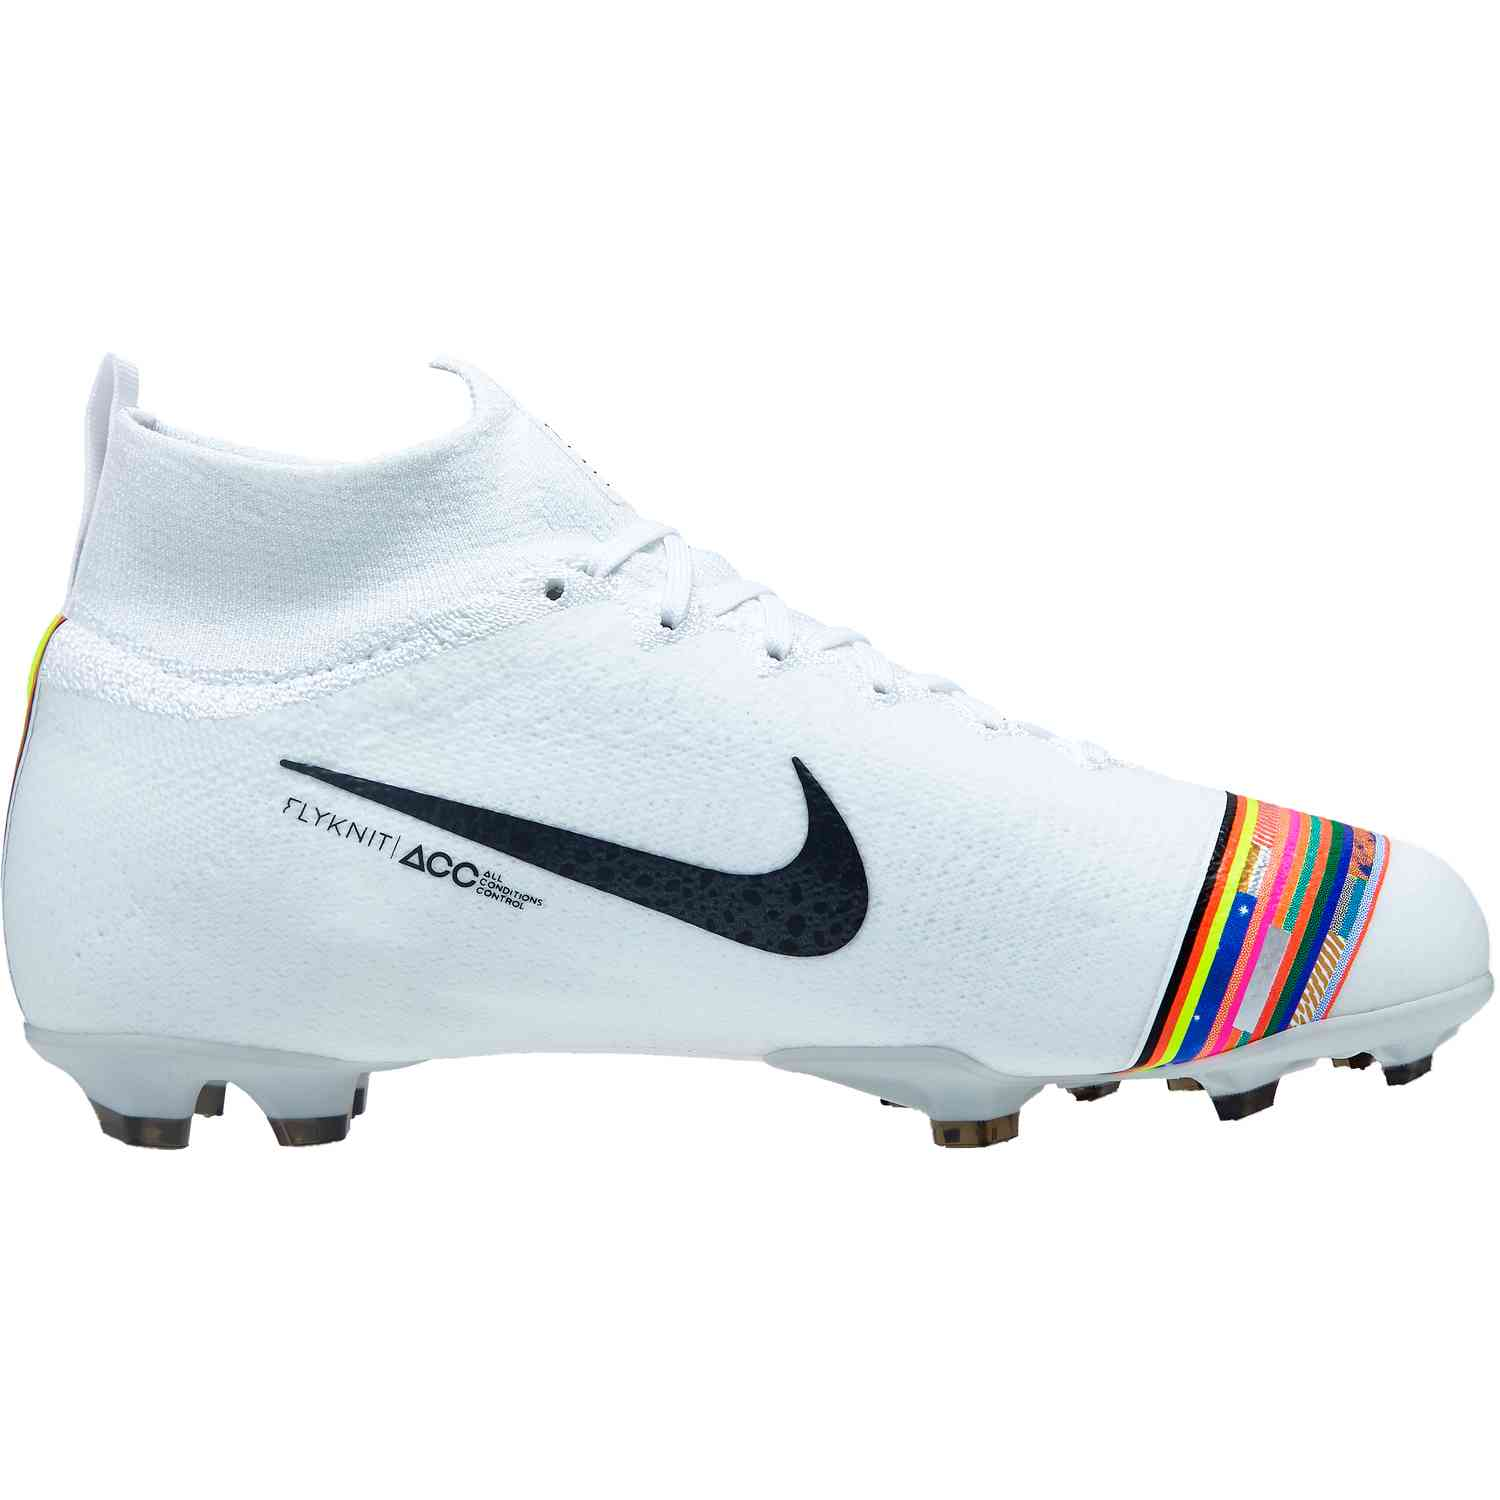 official photos 3a850 1a42c Kids Nike Mercurial Superfly 6 Elite FG - Level Up - Soccer Master